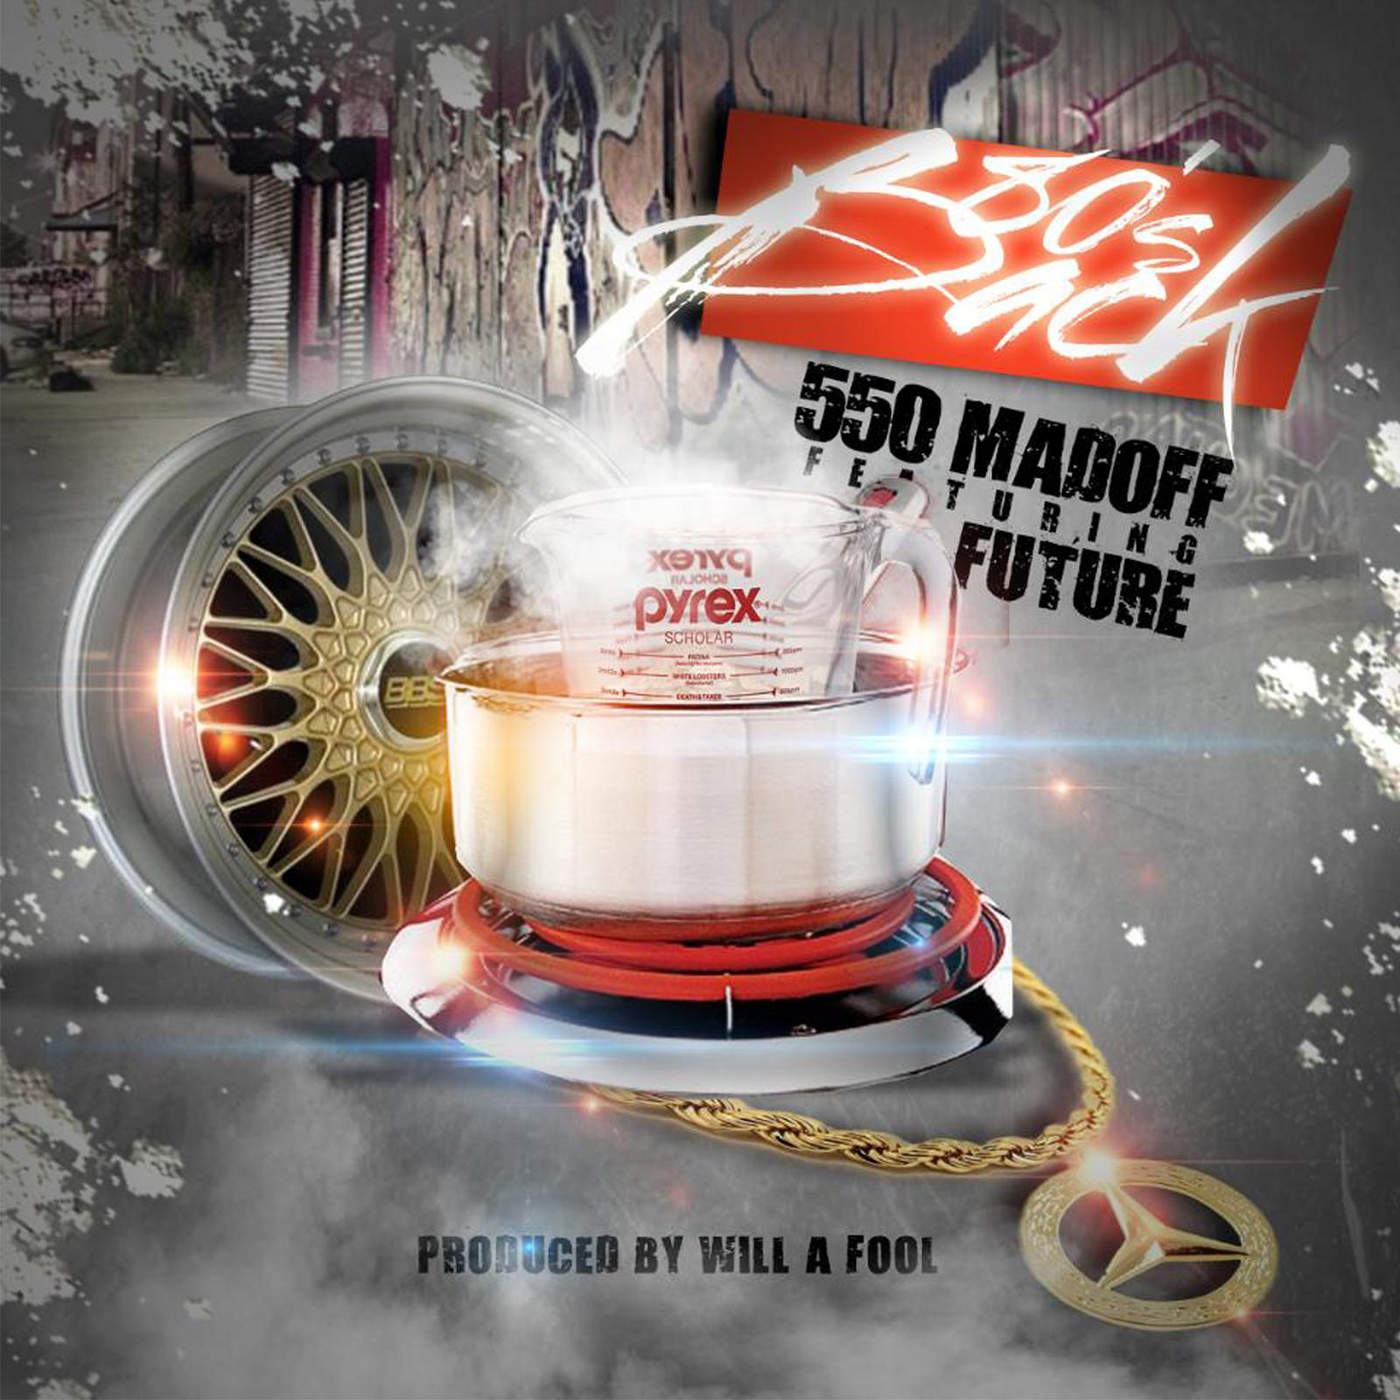 550 Madoff - 80's Back (feat. Future) - Single Cover